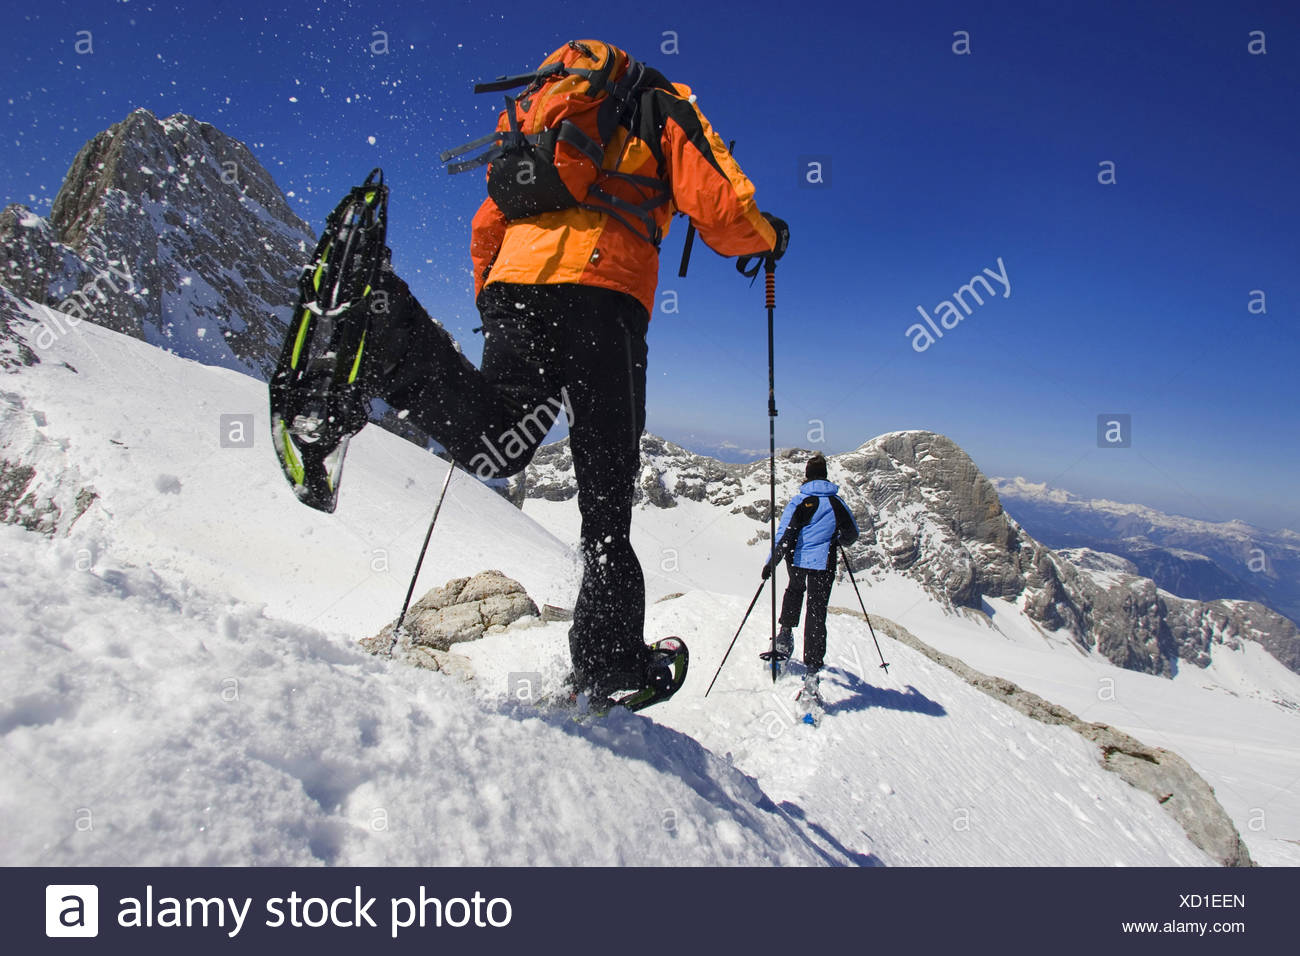 two hikers in snowshoes in a snow-covered mountain landscape, Austria - Stock Image